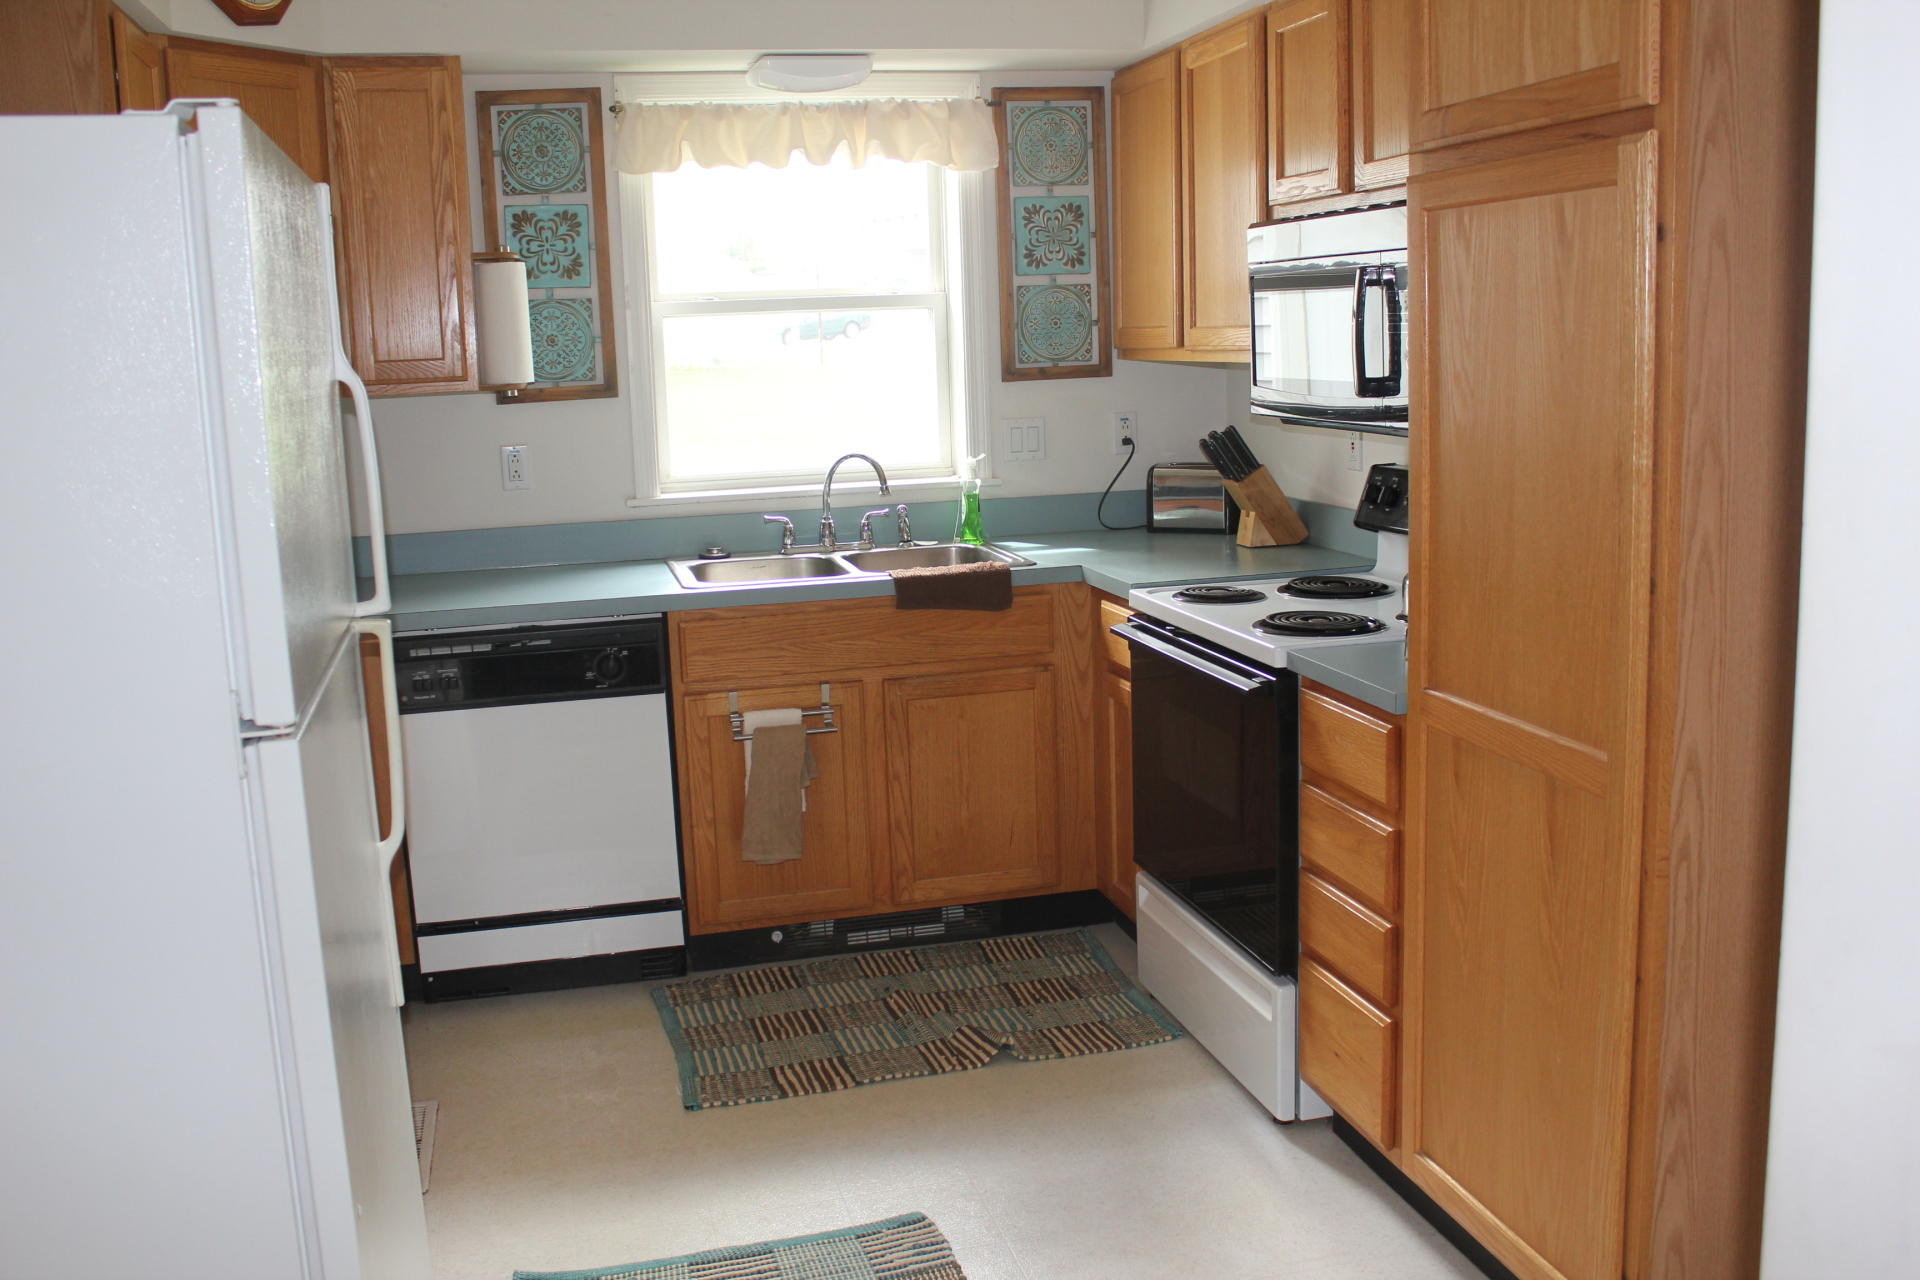 Corporate furnished apartments near Camp Hill